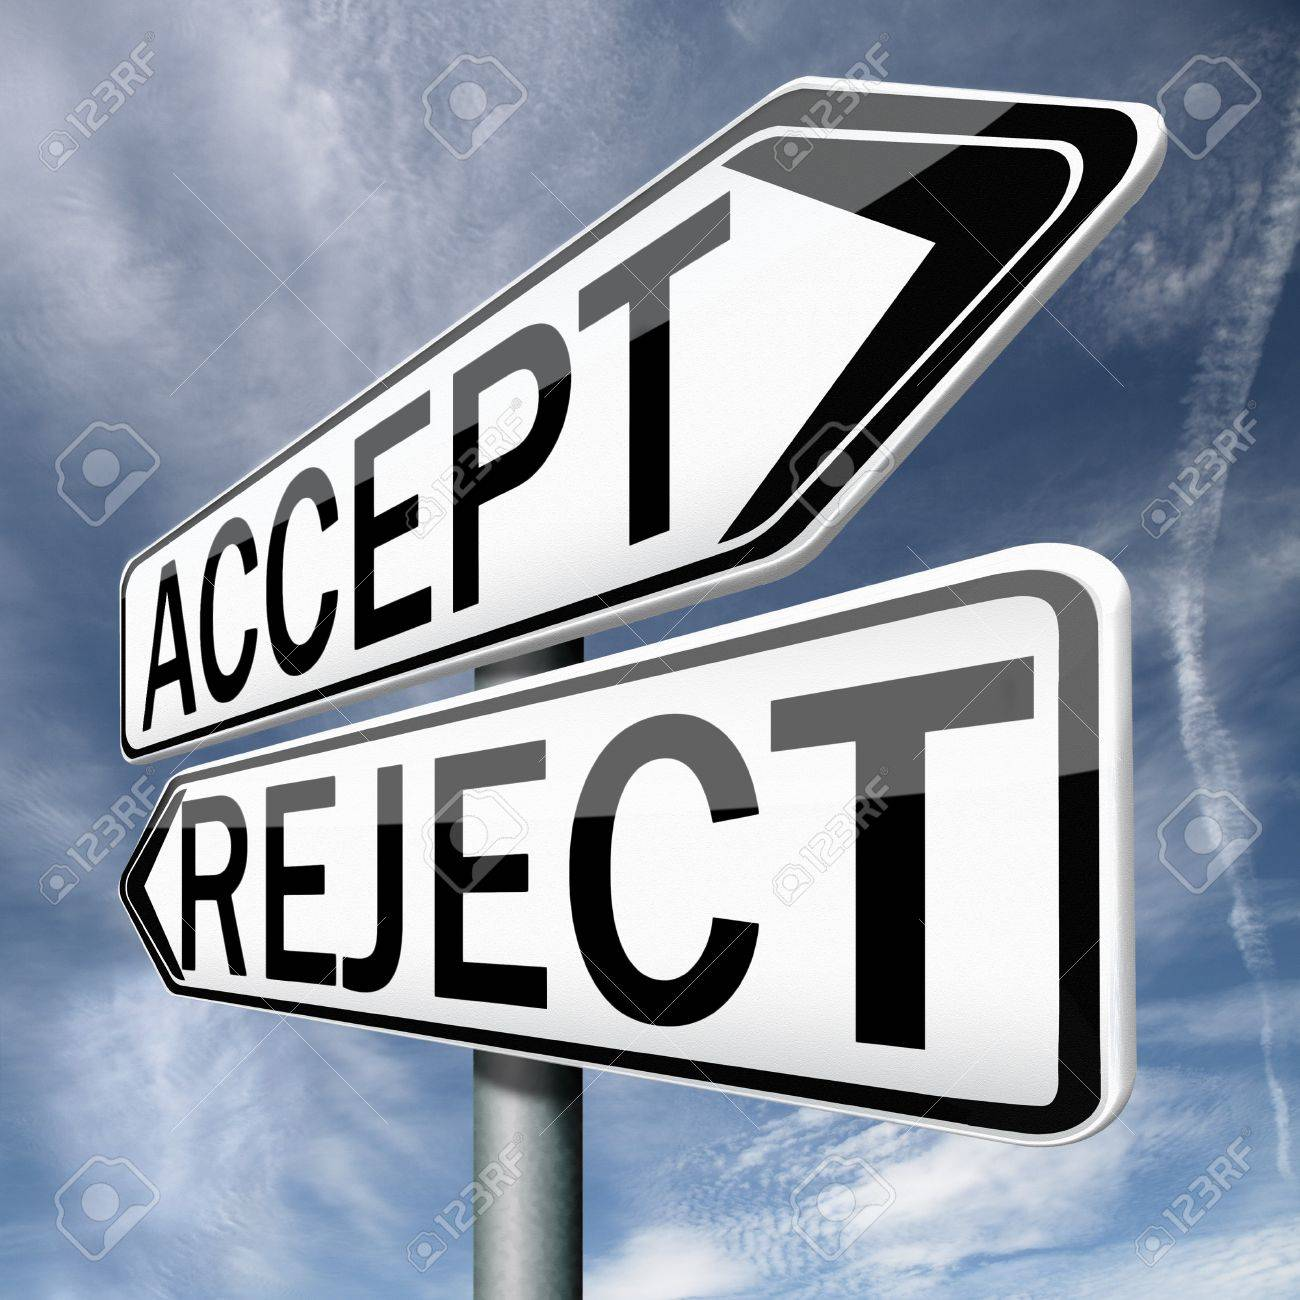 accept or refuse offer proposal or invitation yes or no stock stock photo accept or refuse offer proposal or invitation yes or no